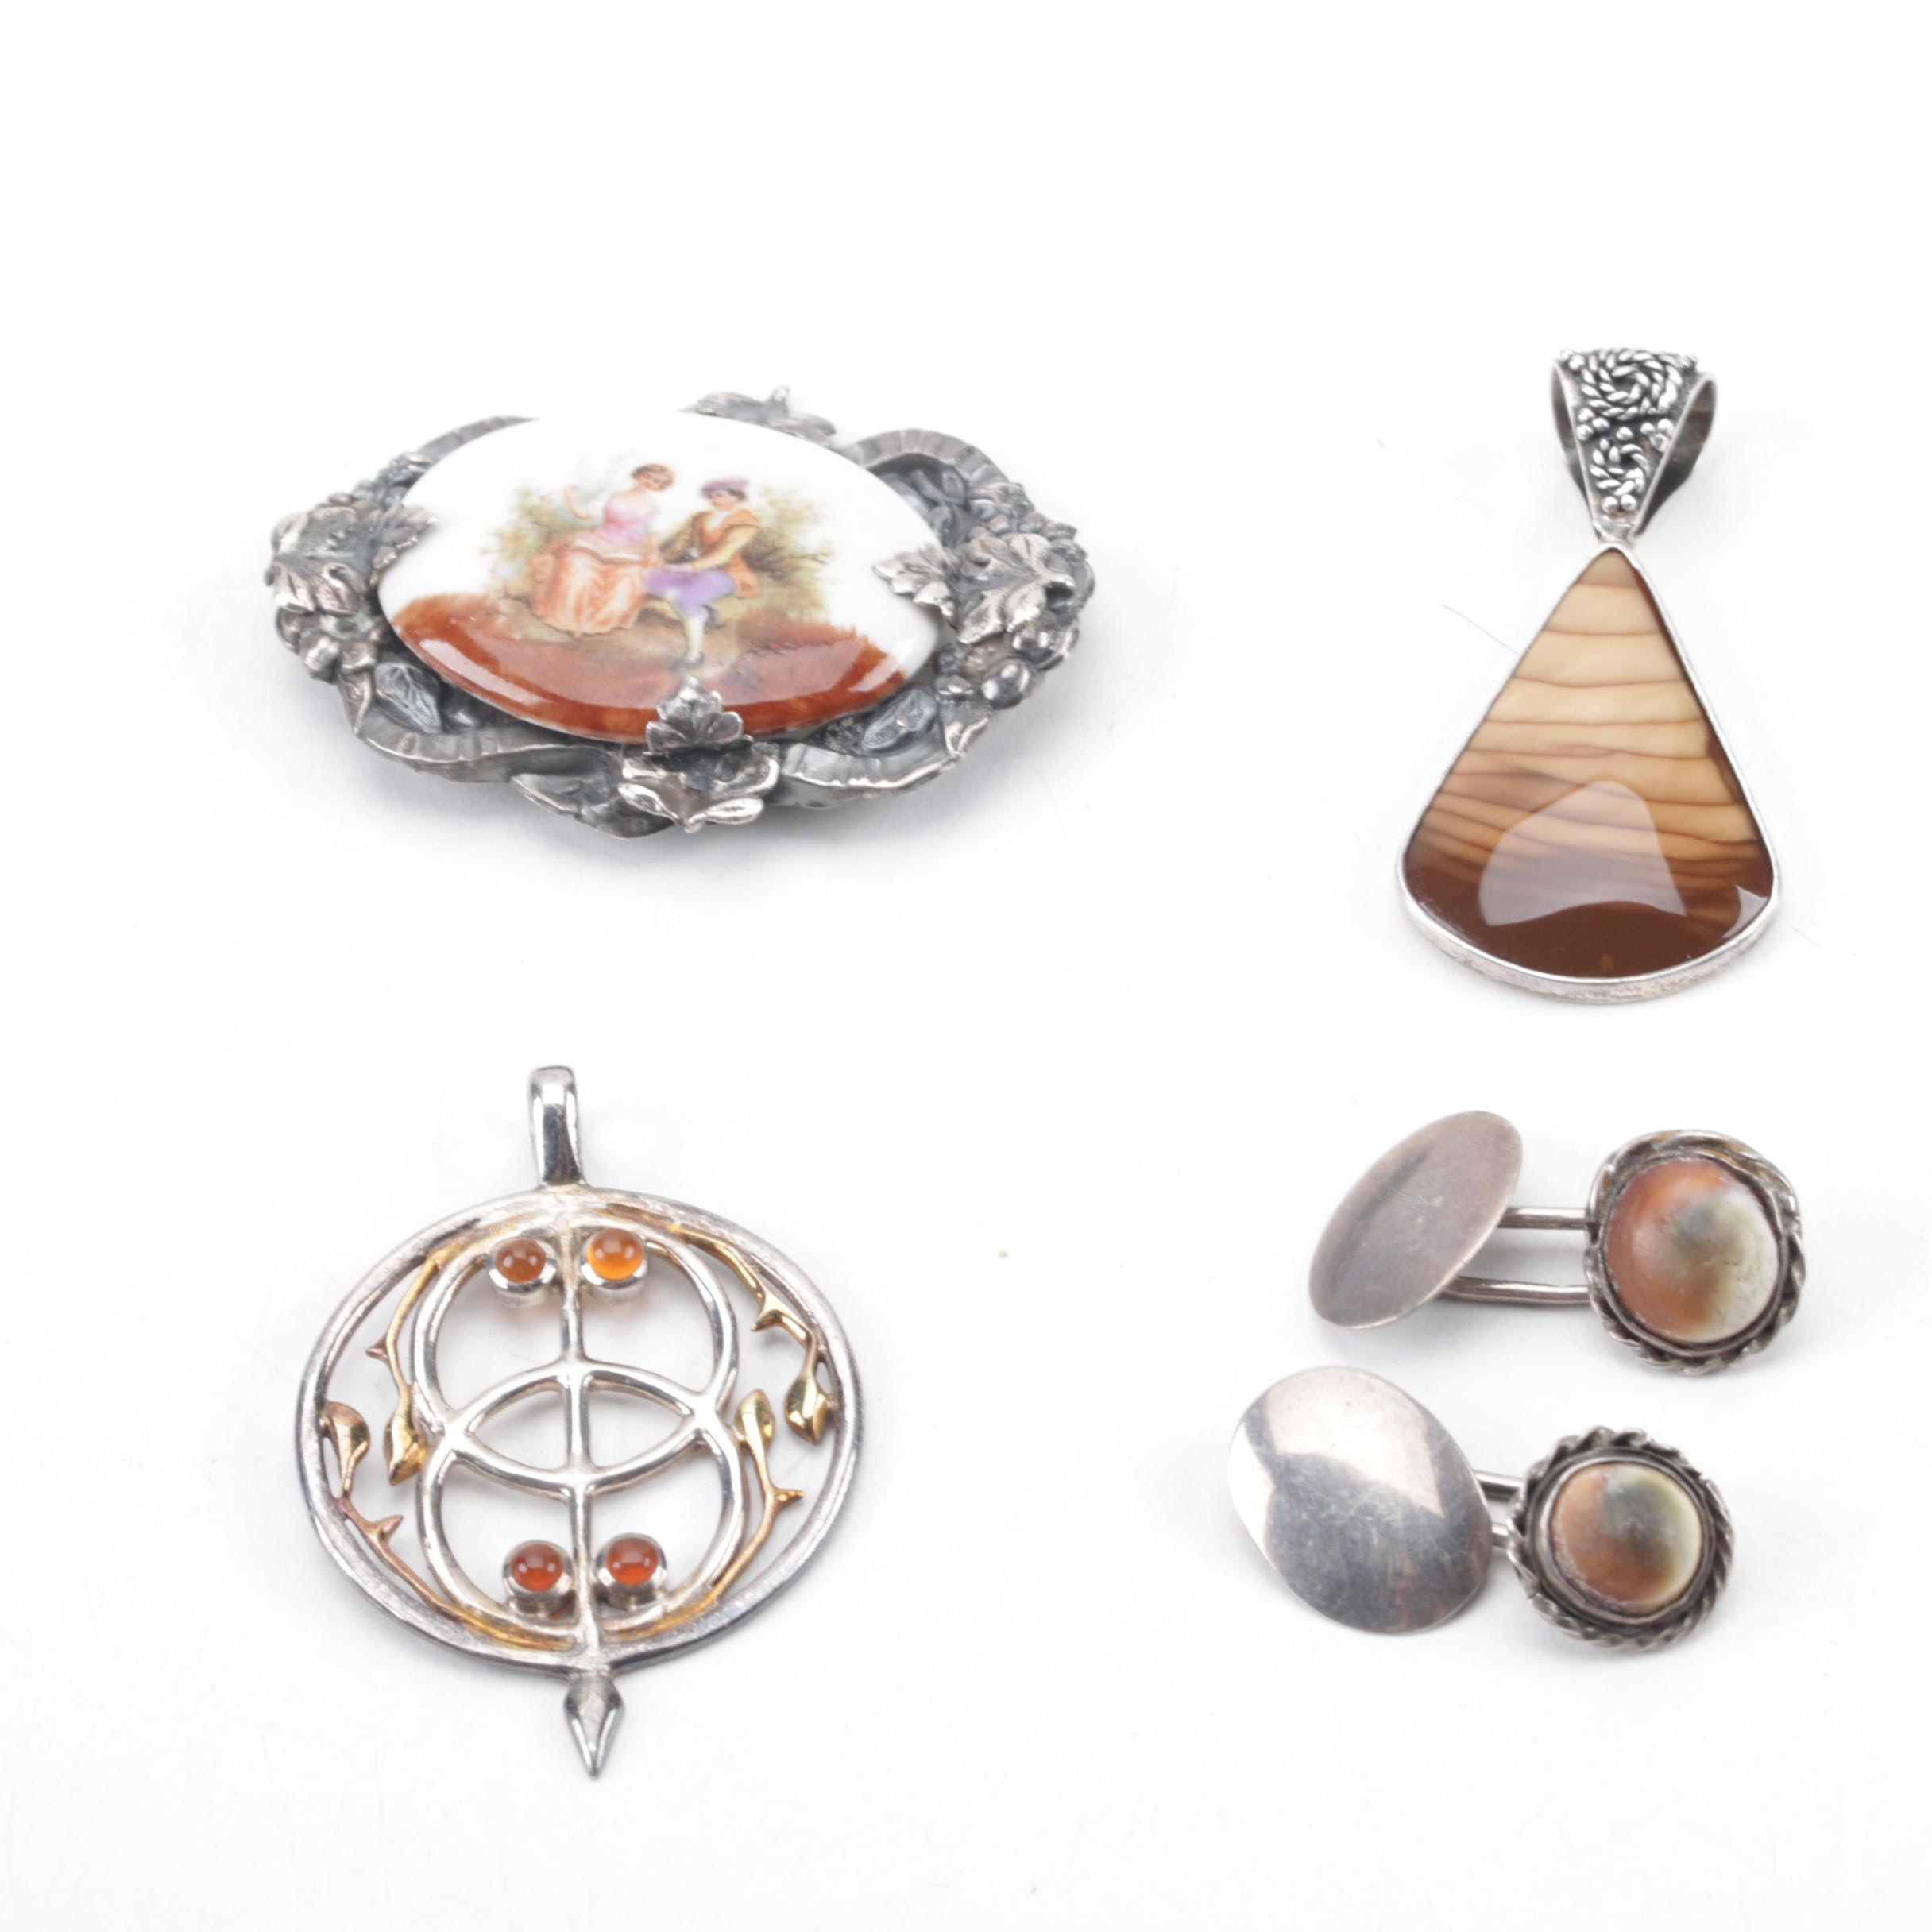 Grouping of Sterling Silver Jewelry Including Gemstones